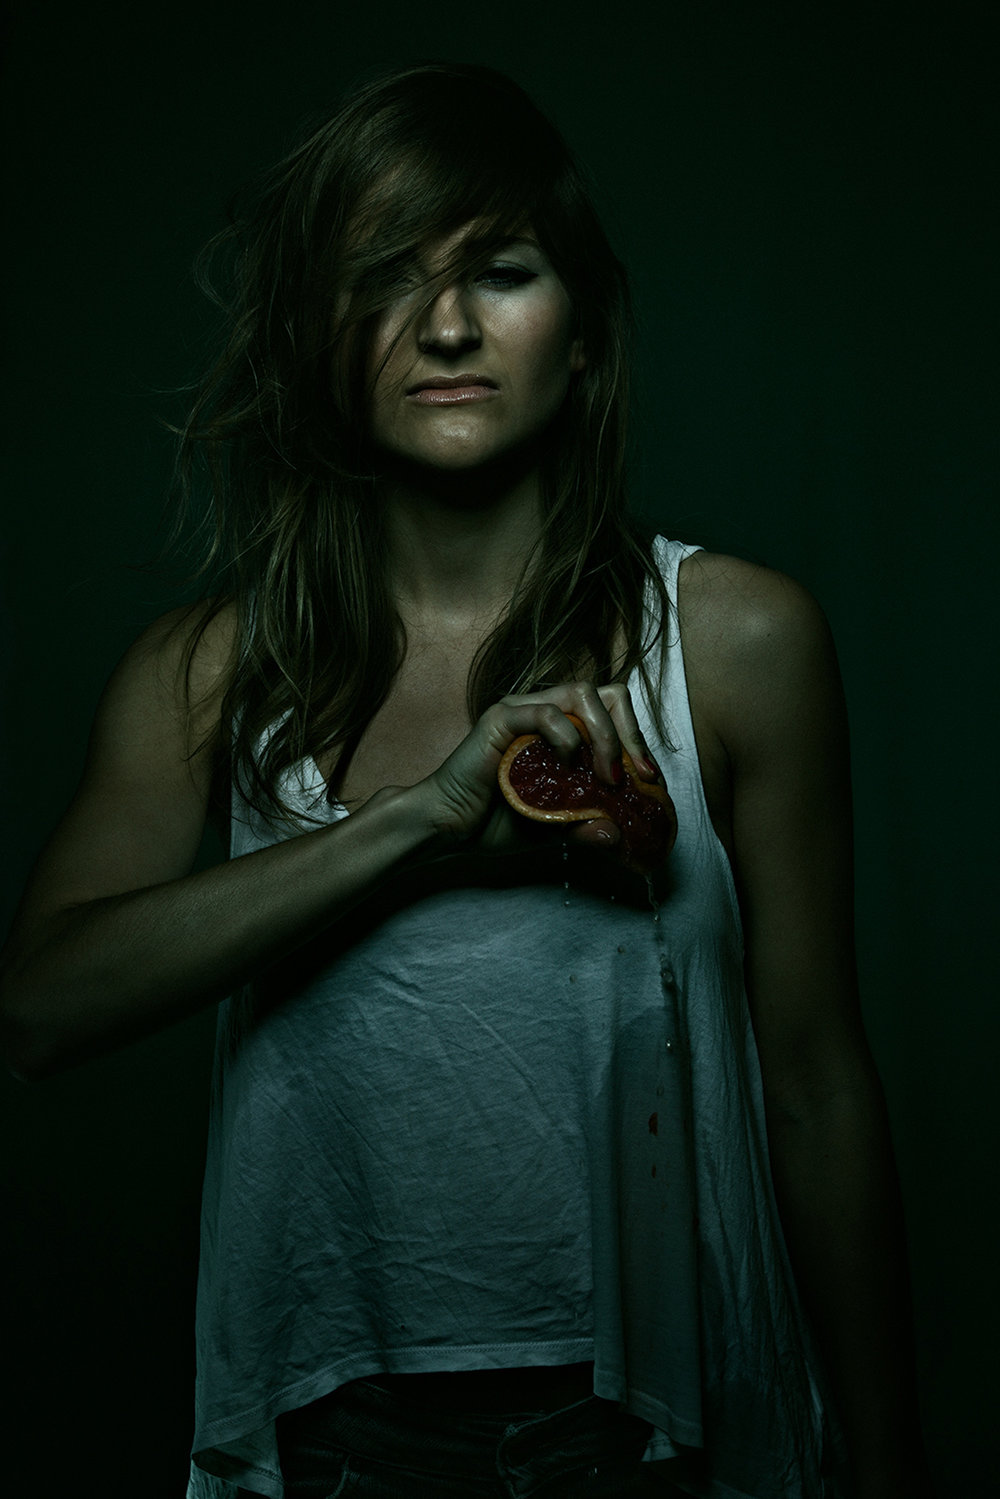 ©TomWoollard_editorial-portrait-beautiful-young-woman-love-pain-heart-broken-dramatic-dark-moody.jpg